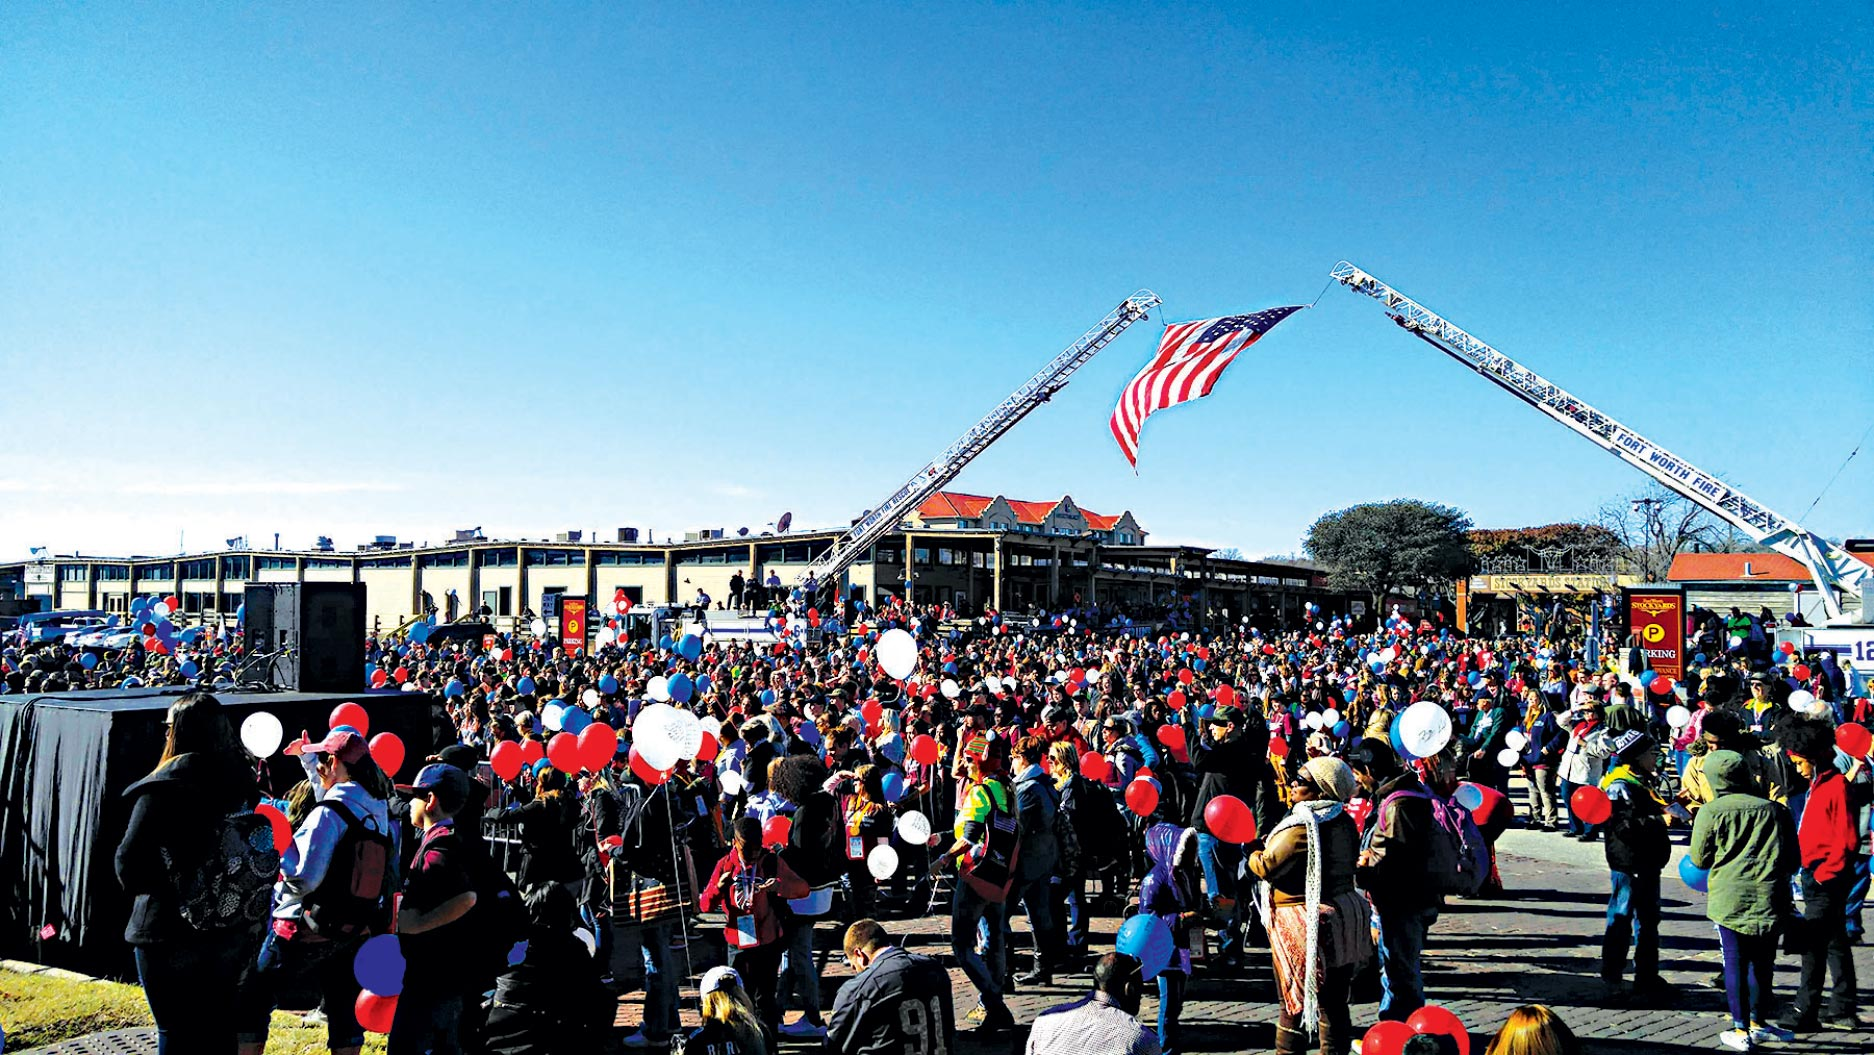 (Courtesy photo) FORT WORTH, TX—More than 1,700 family members and mentors gathered for the Snowball Express balloon release in Dallas, TX, Dec. 9, 2017. The event brings together children of fallen military members and gives them a chance to relate to other children going through the same experiences.